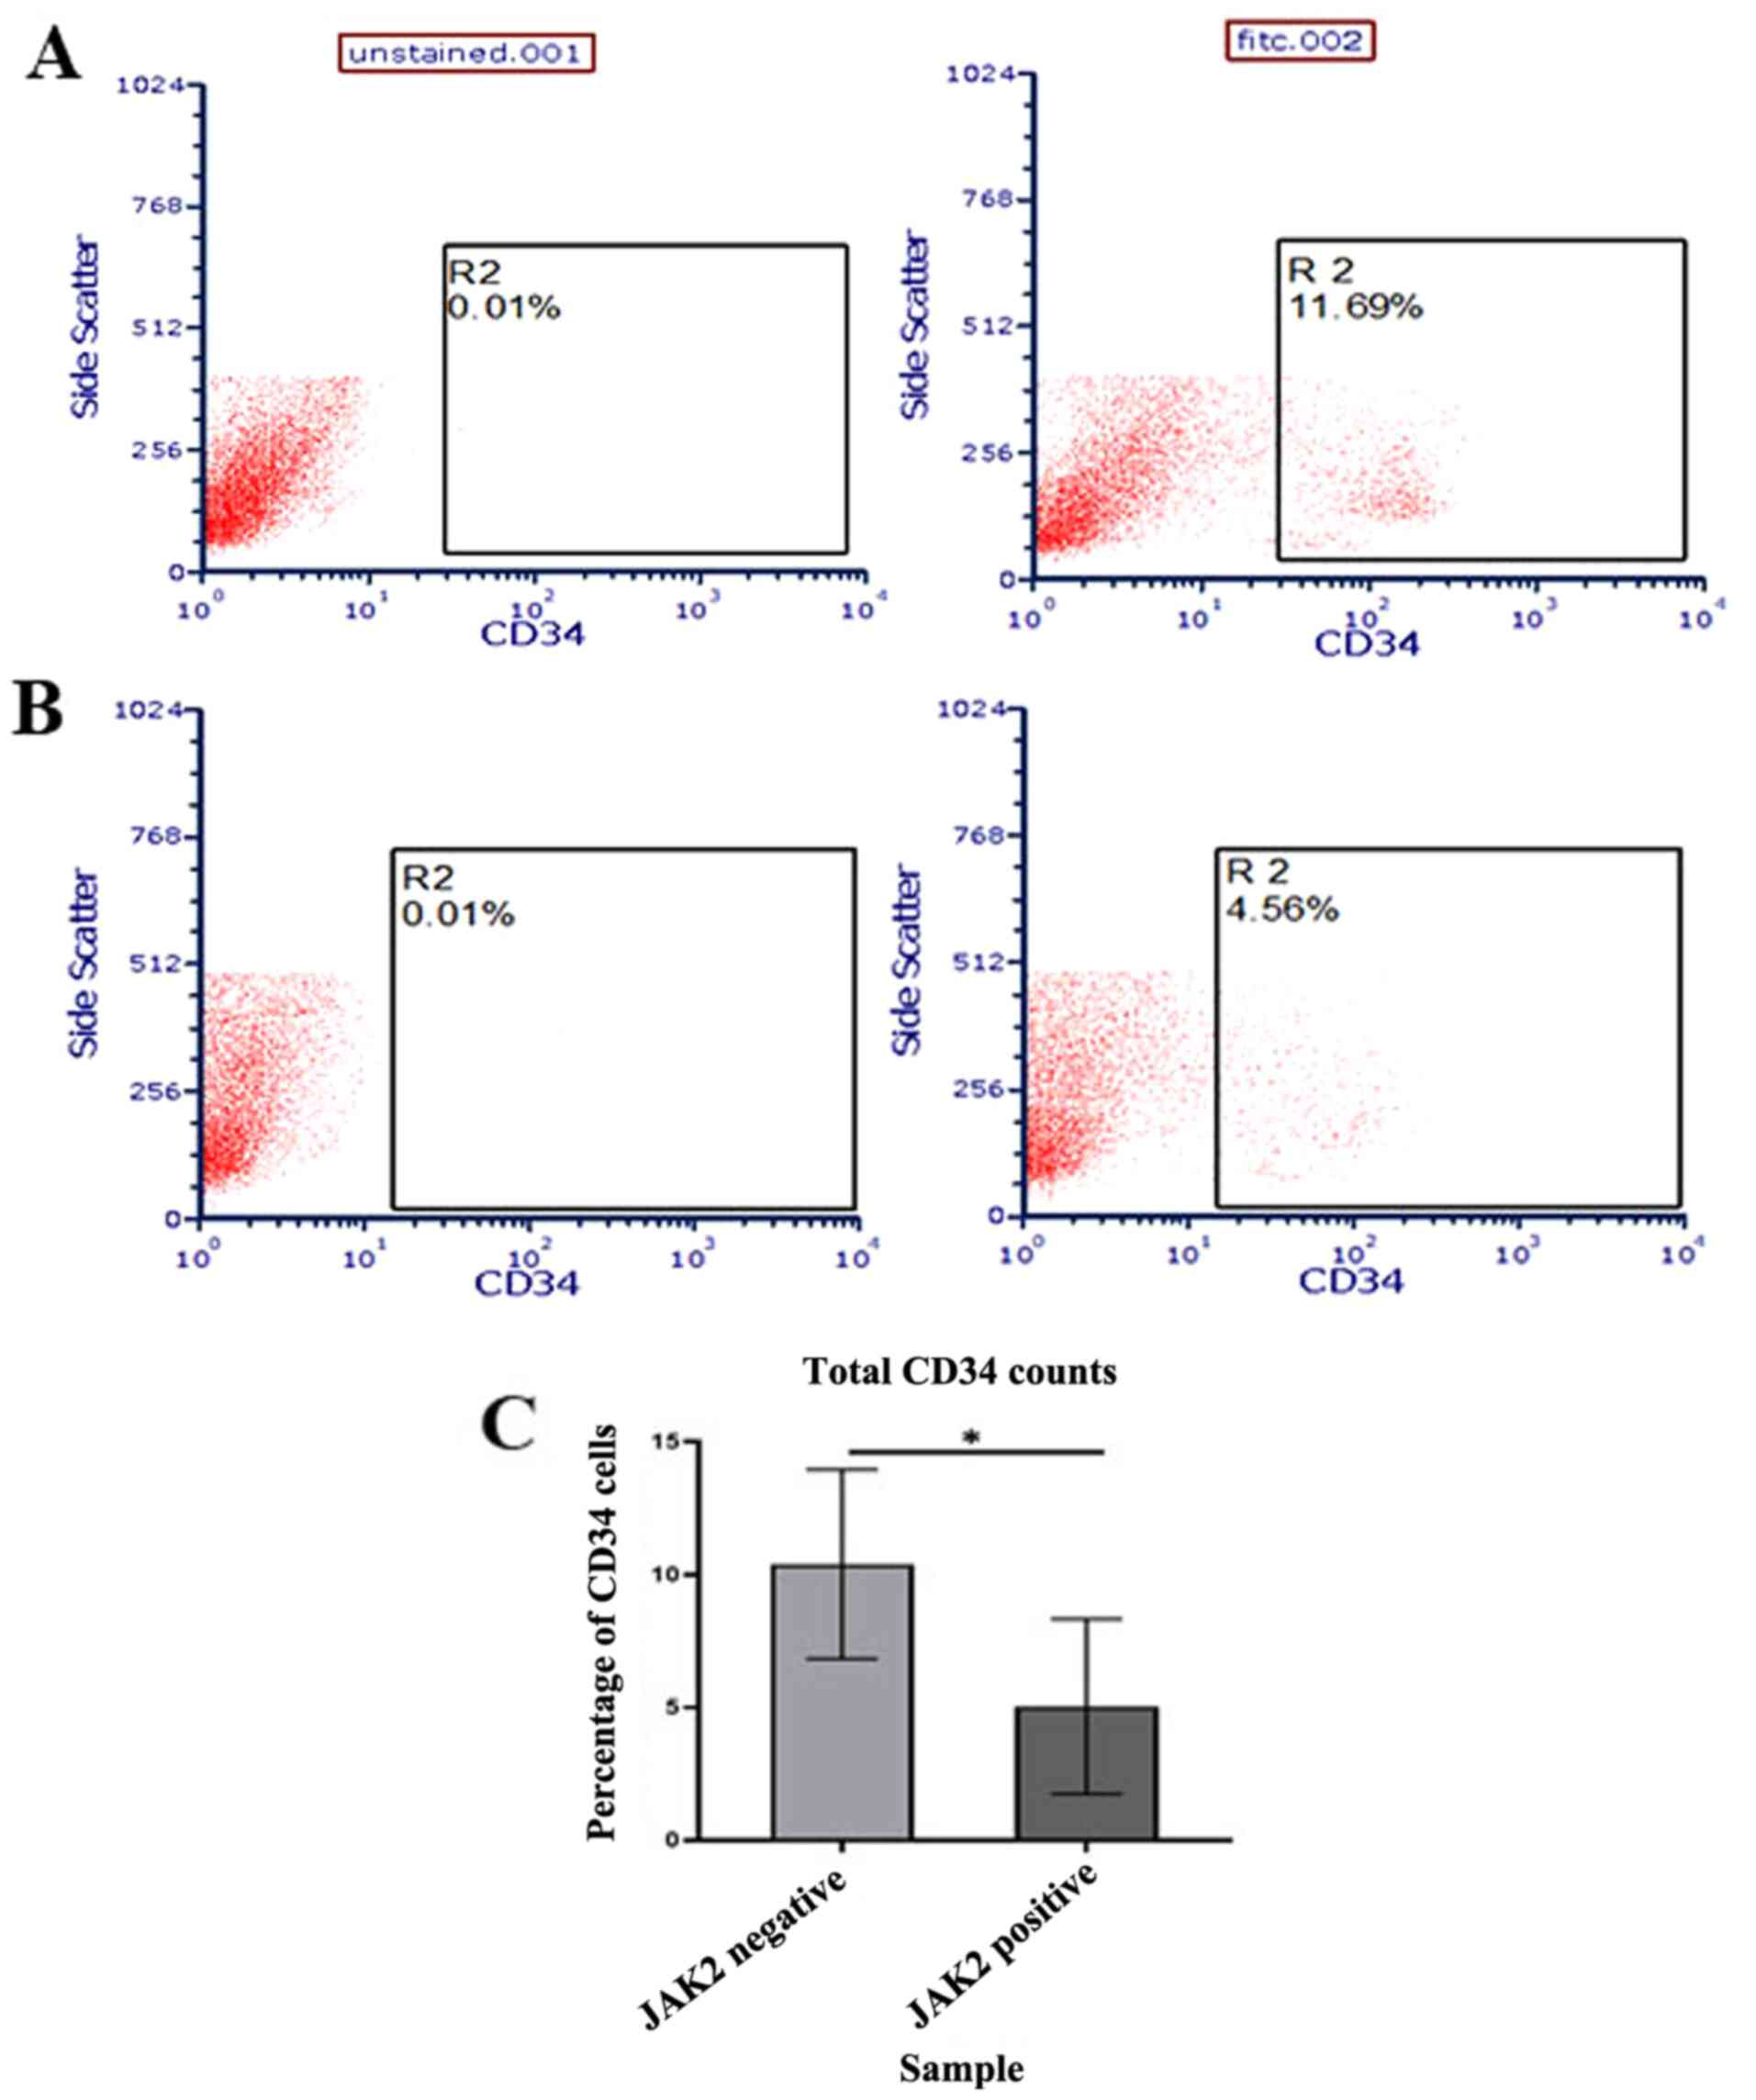 Gene Expression Profiling Of Cd34 Cells From Patients With Myeloproliferative Neoplasms